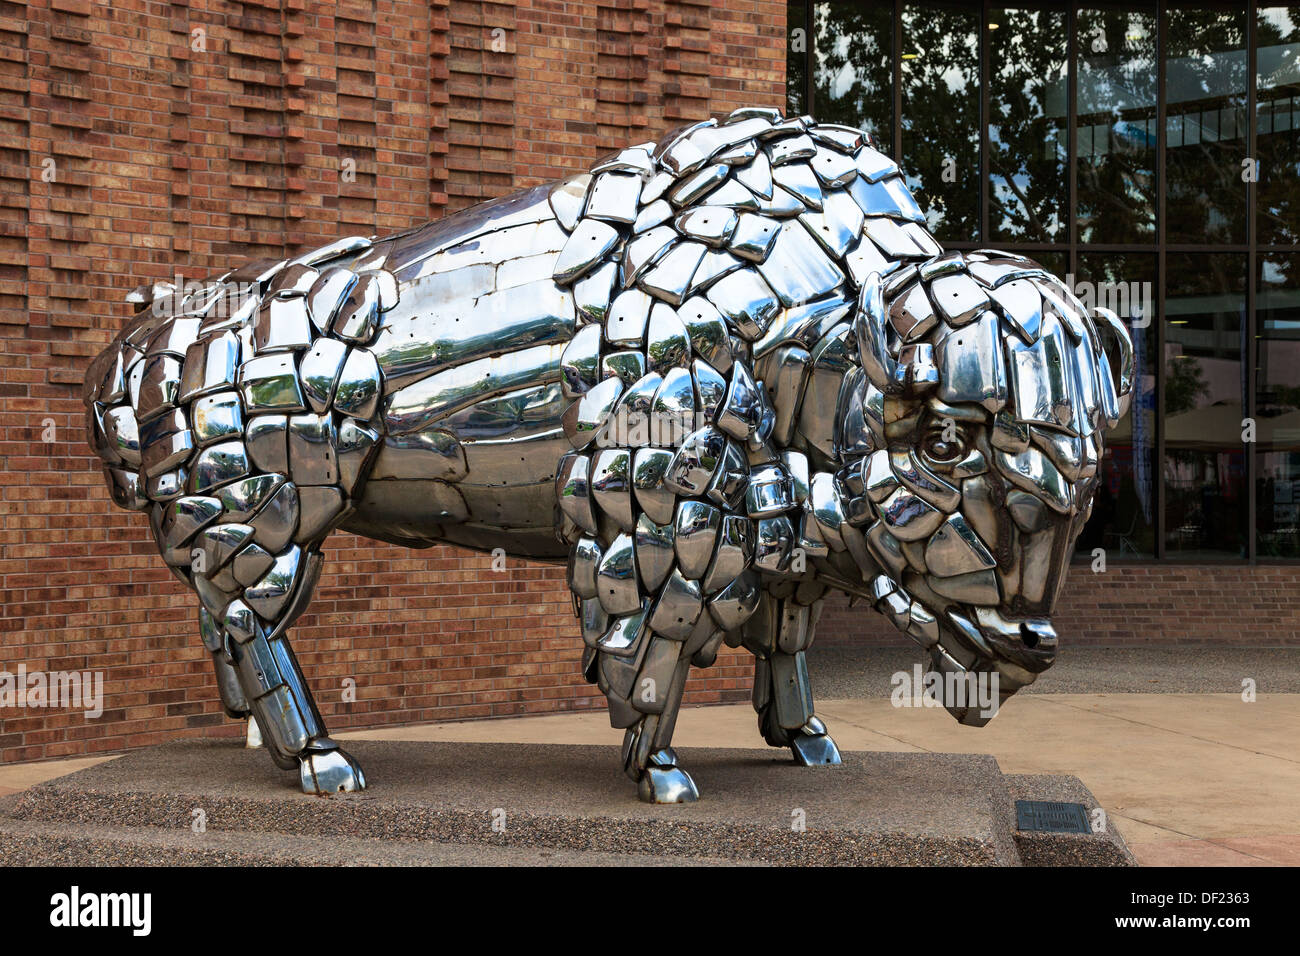 Statue of a bison made from automobile chrome parts, and one of a number of street artworks in downtown Grand Junction, Stock Photo